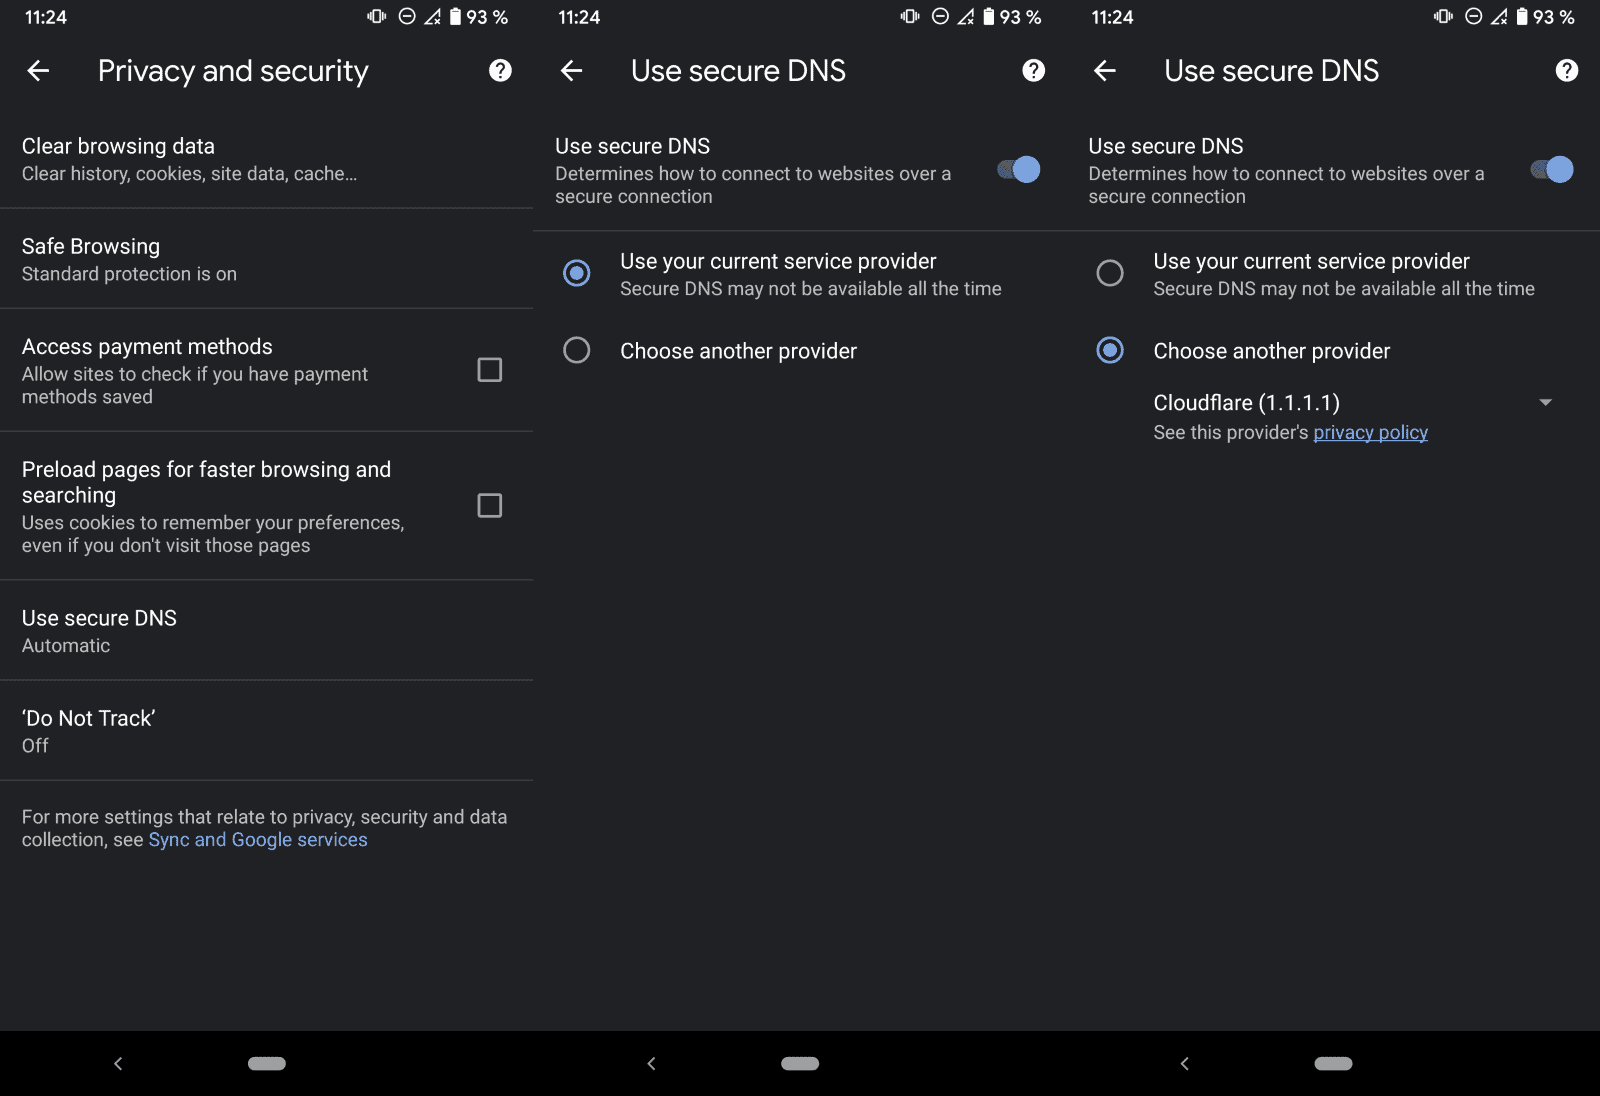 chrome android secure dns